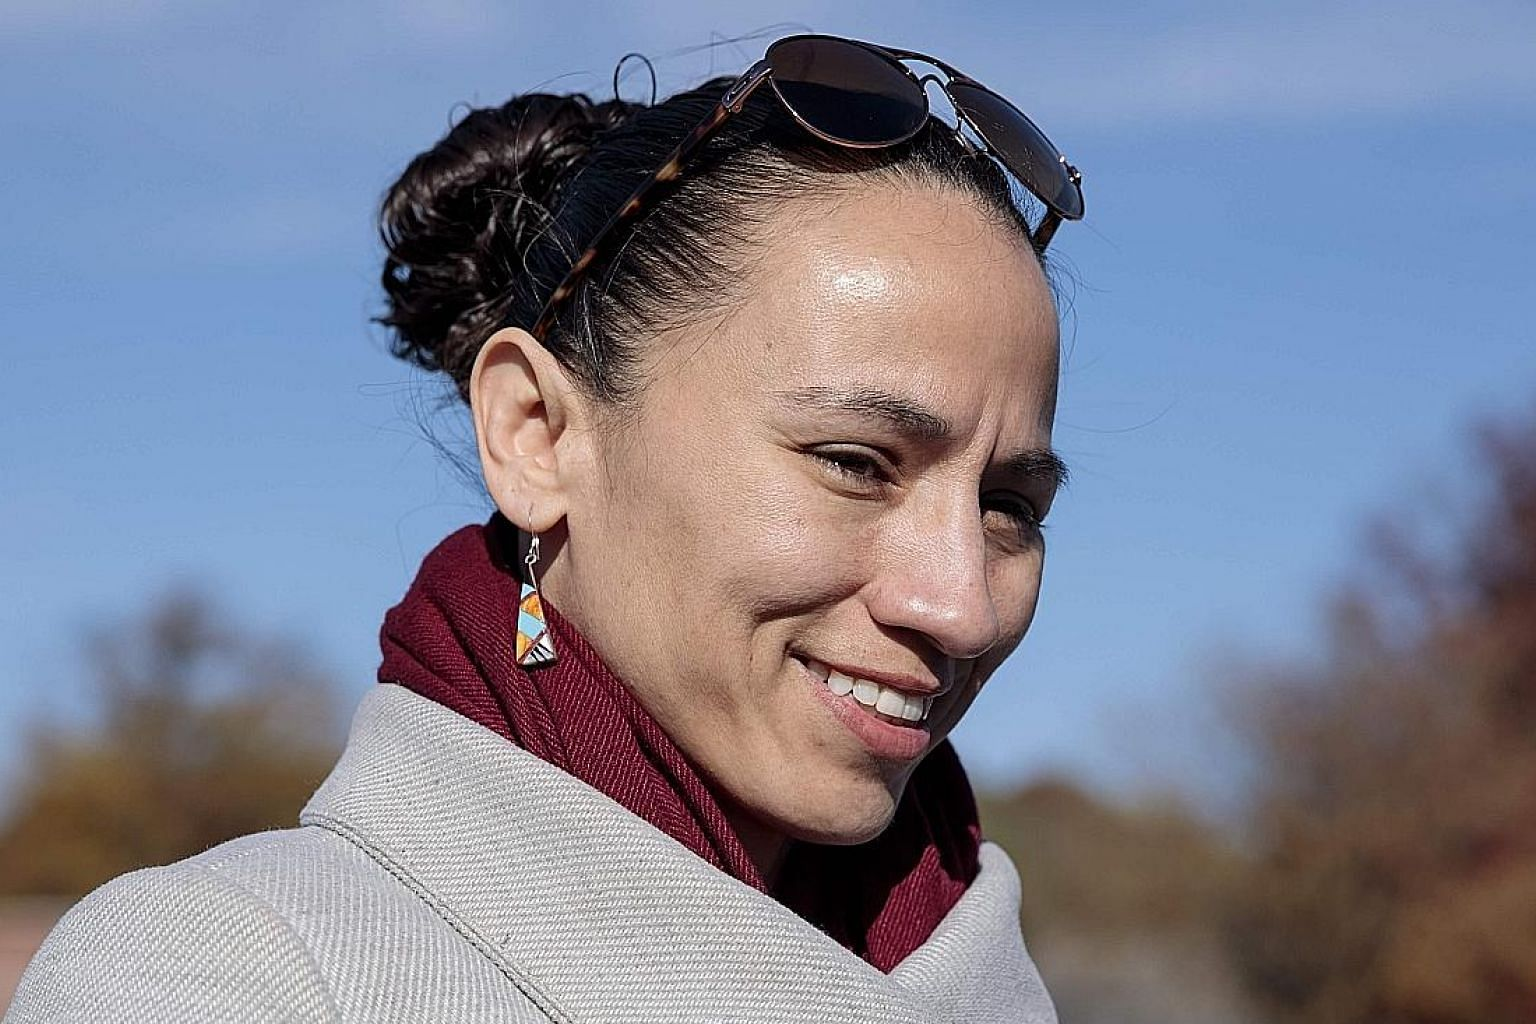 Ms Sharice Davids made history when she became one of the first two Native American women to be elected to Congress.